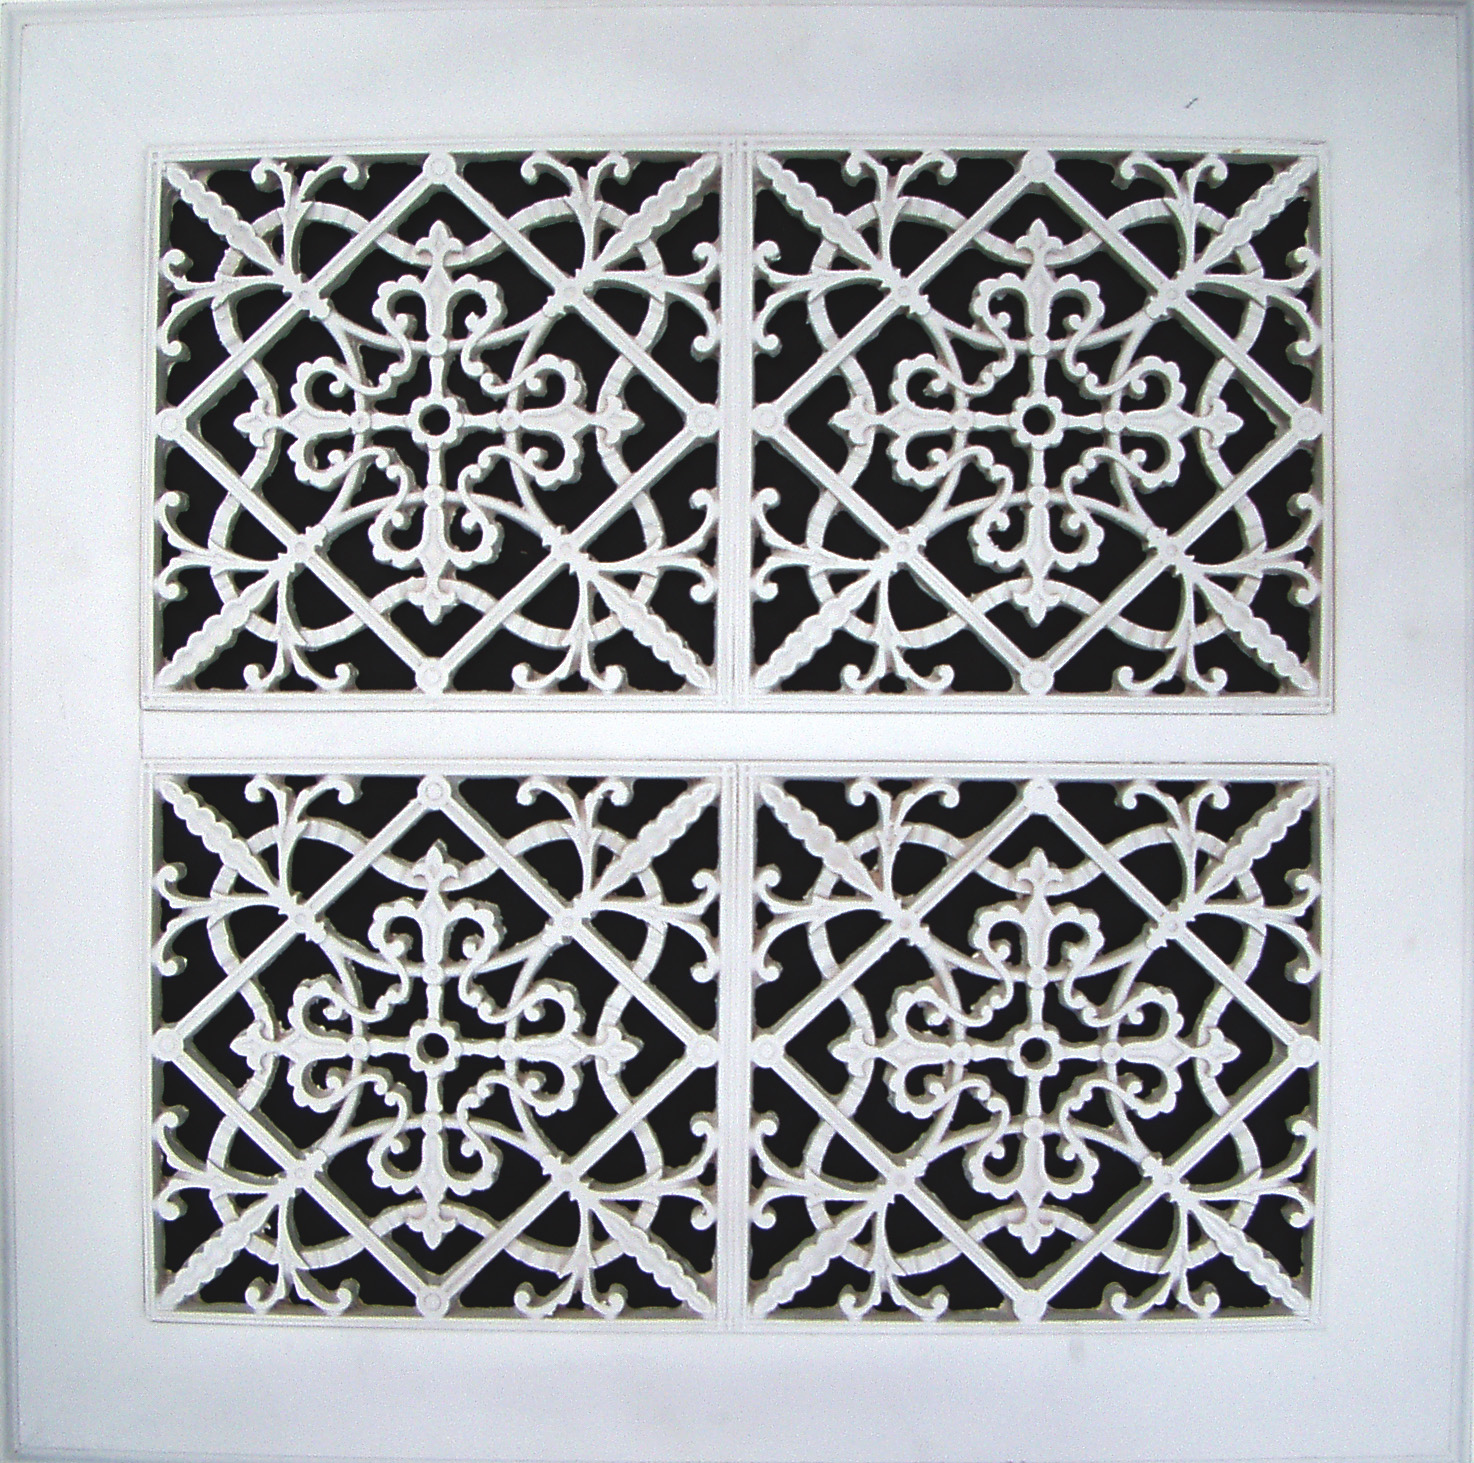 Old Arts and Crafts decorative grille 24x24